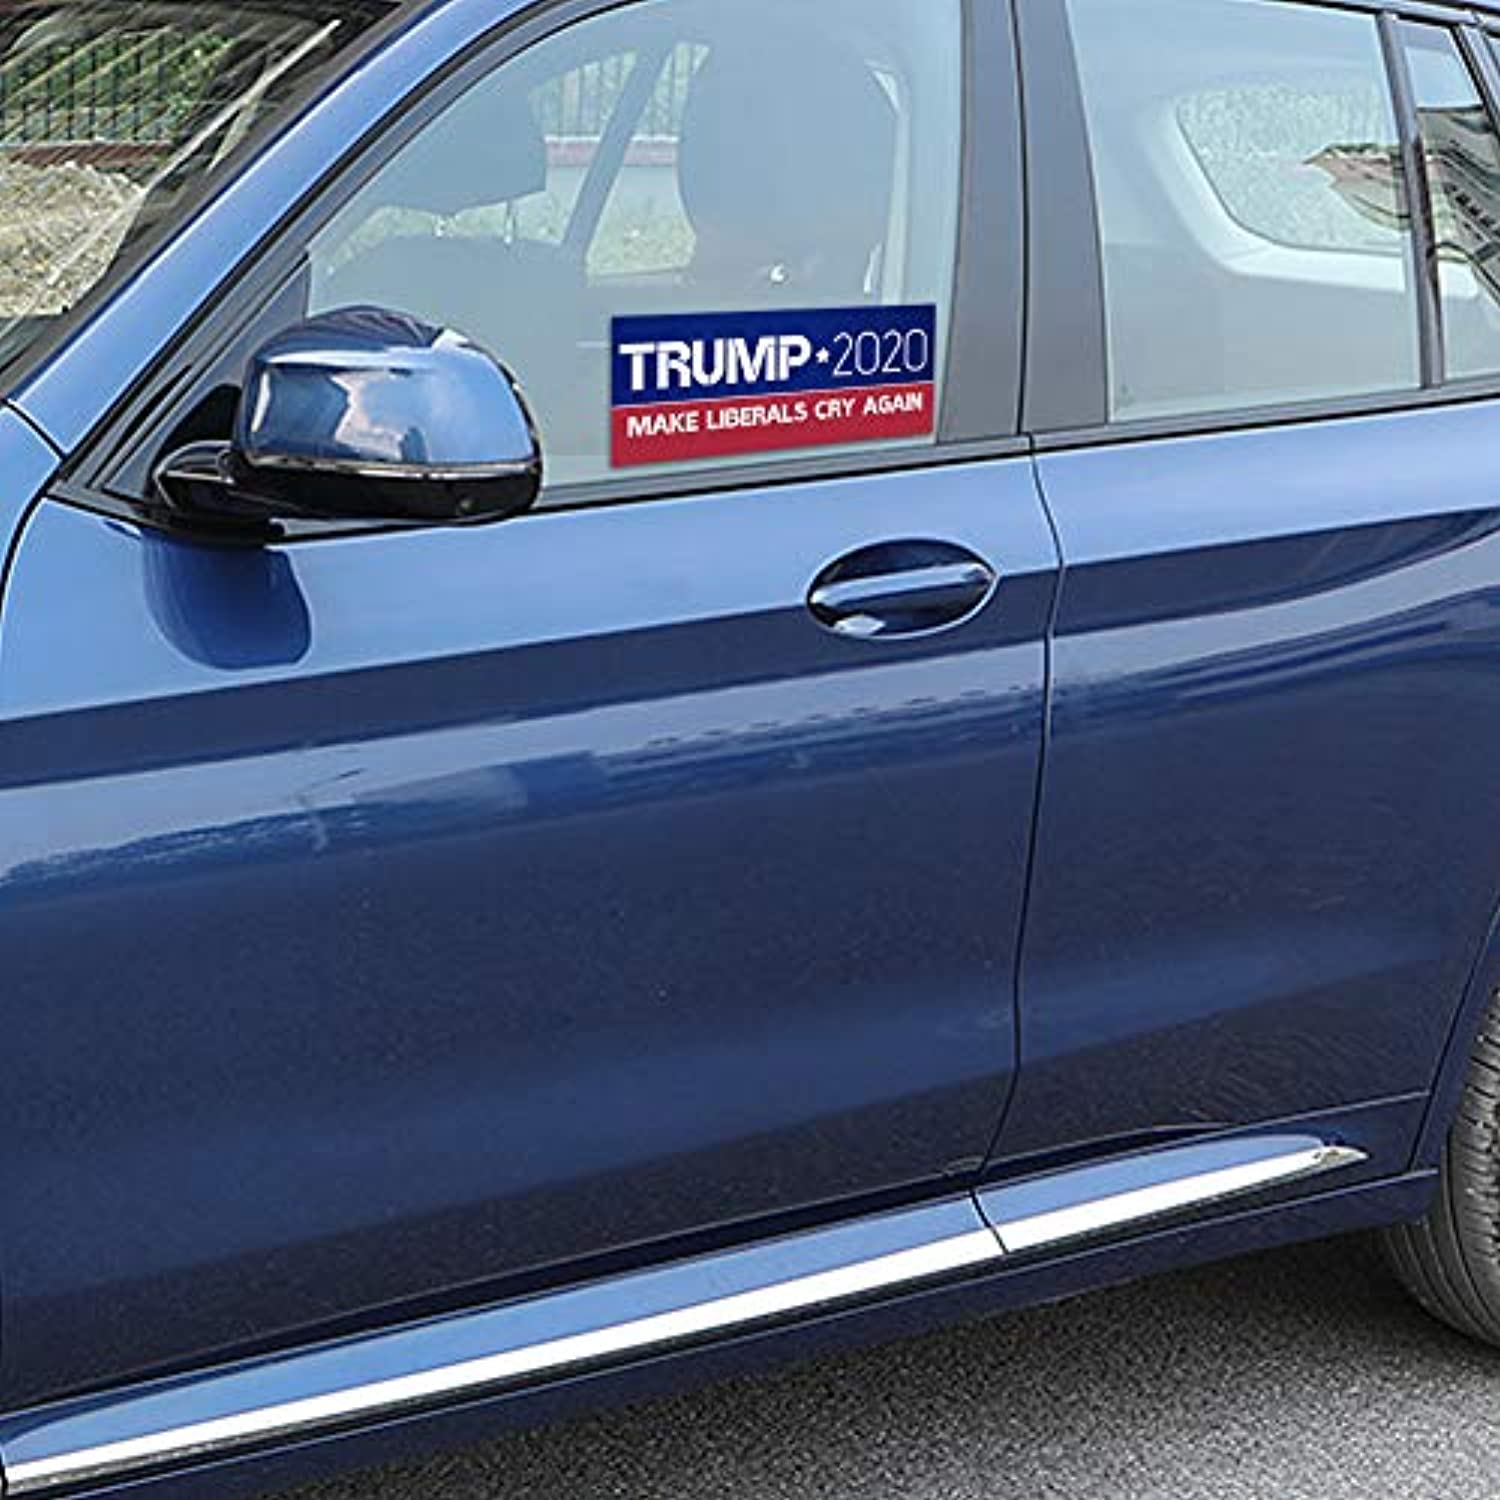 Trump bumper stickers for the presidential election-five different sticker designs-limited time offer (PVC stickers)